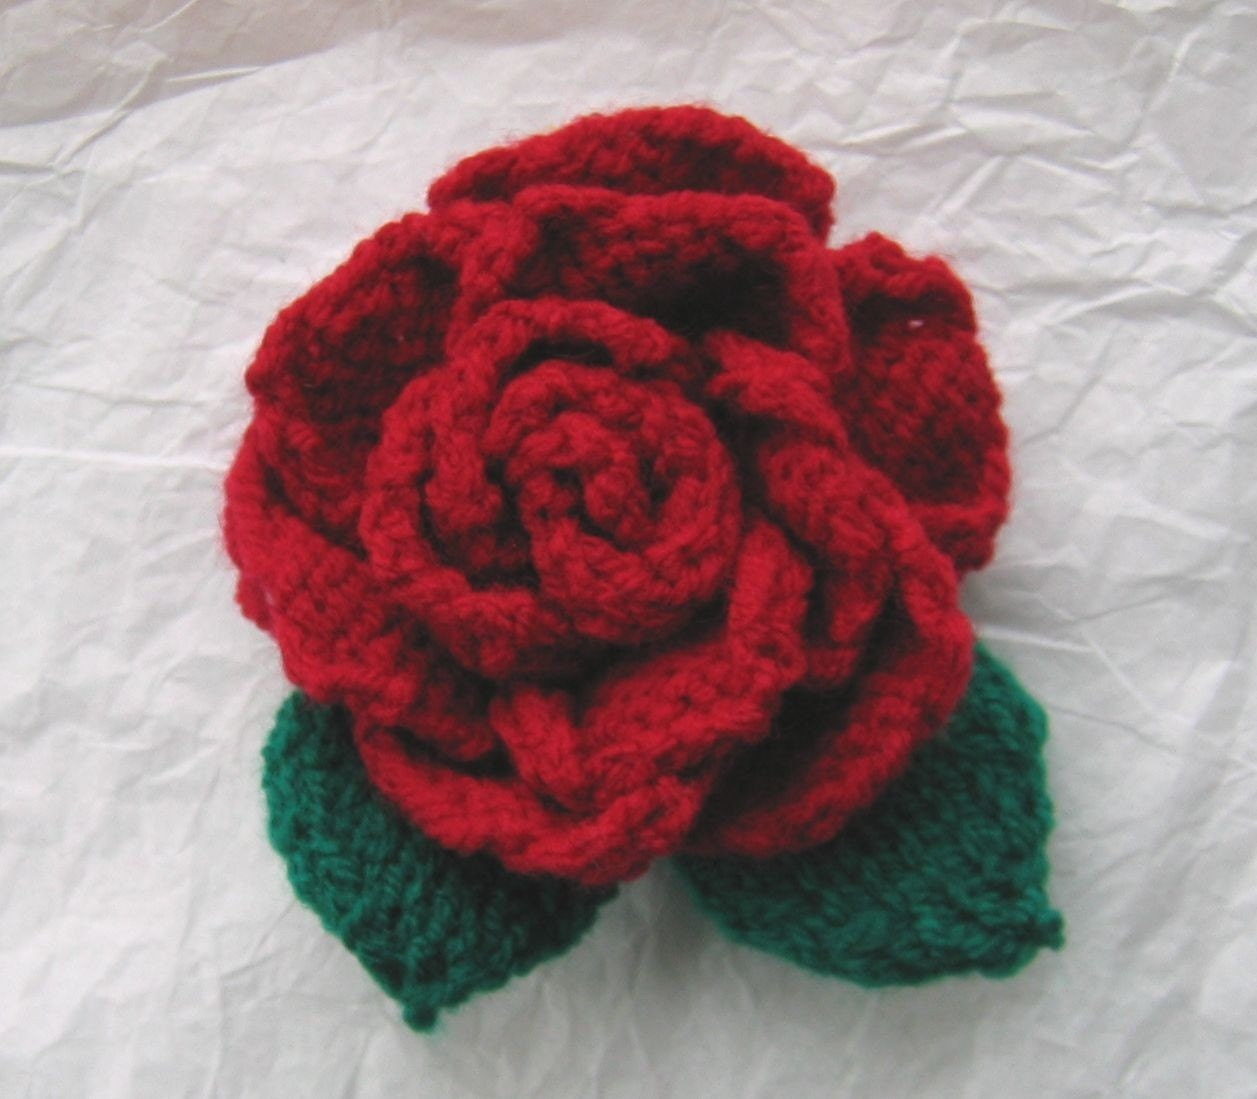 Knitting Flowers Patterns Free : Knitting pattern rose flower by email gigglinggoblin on